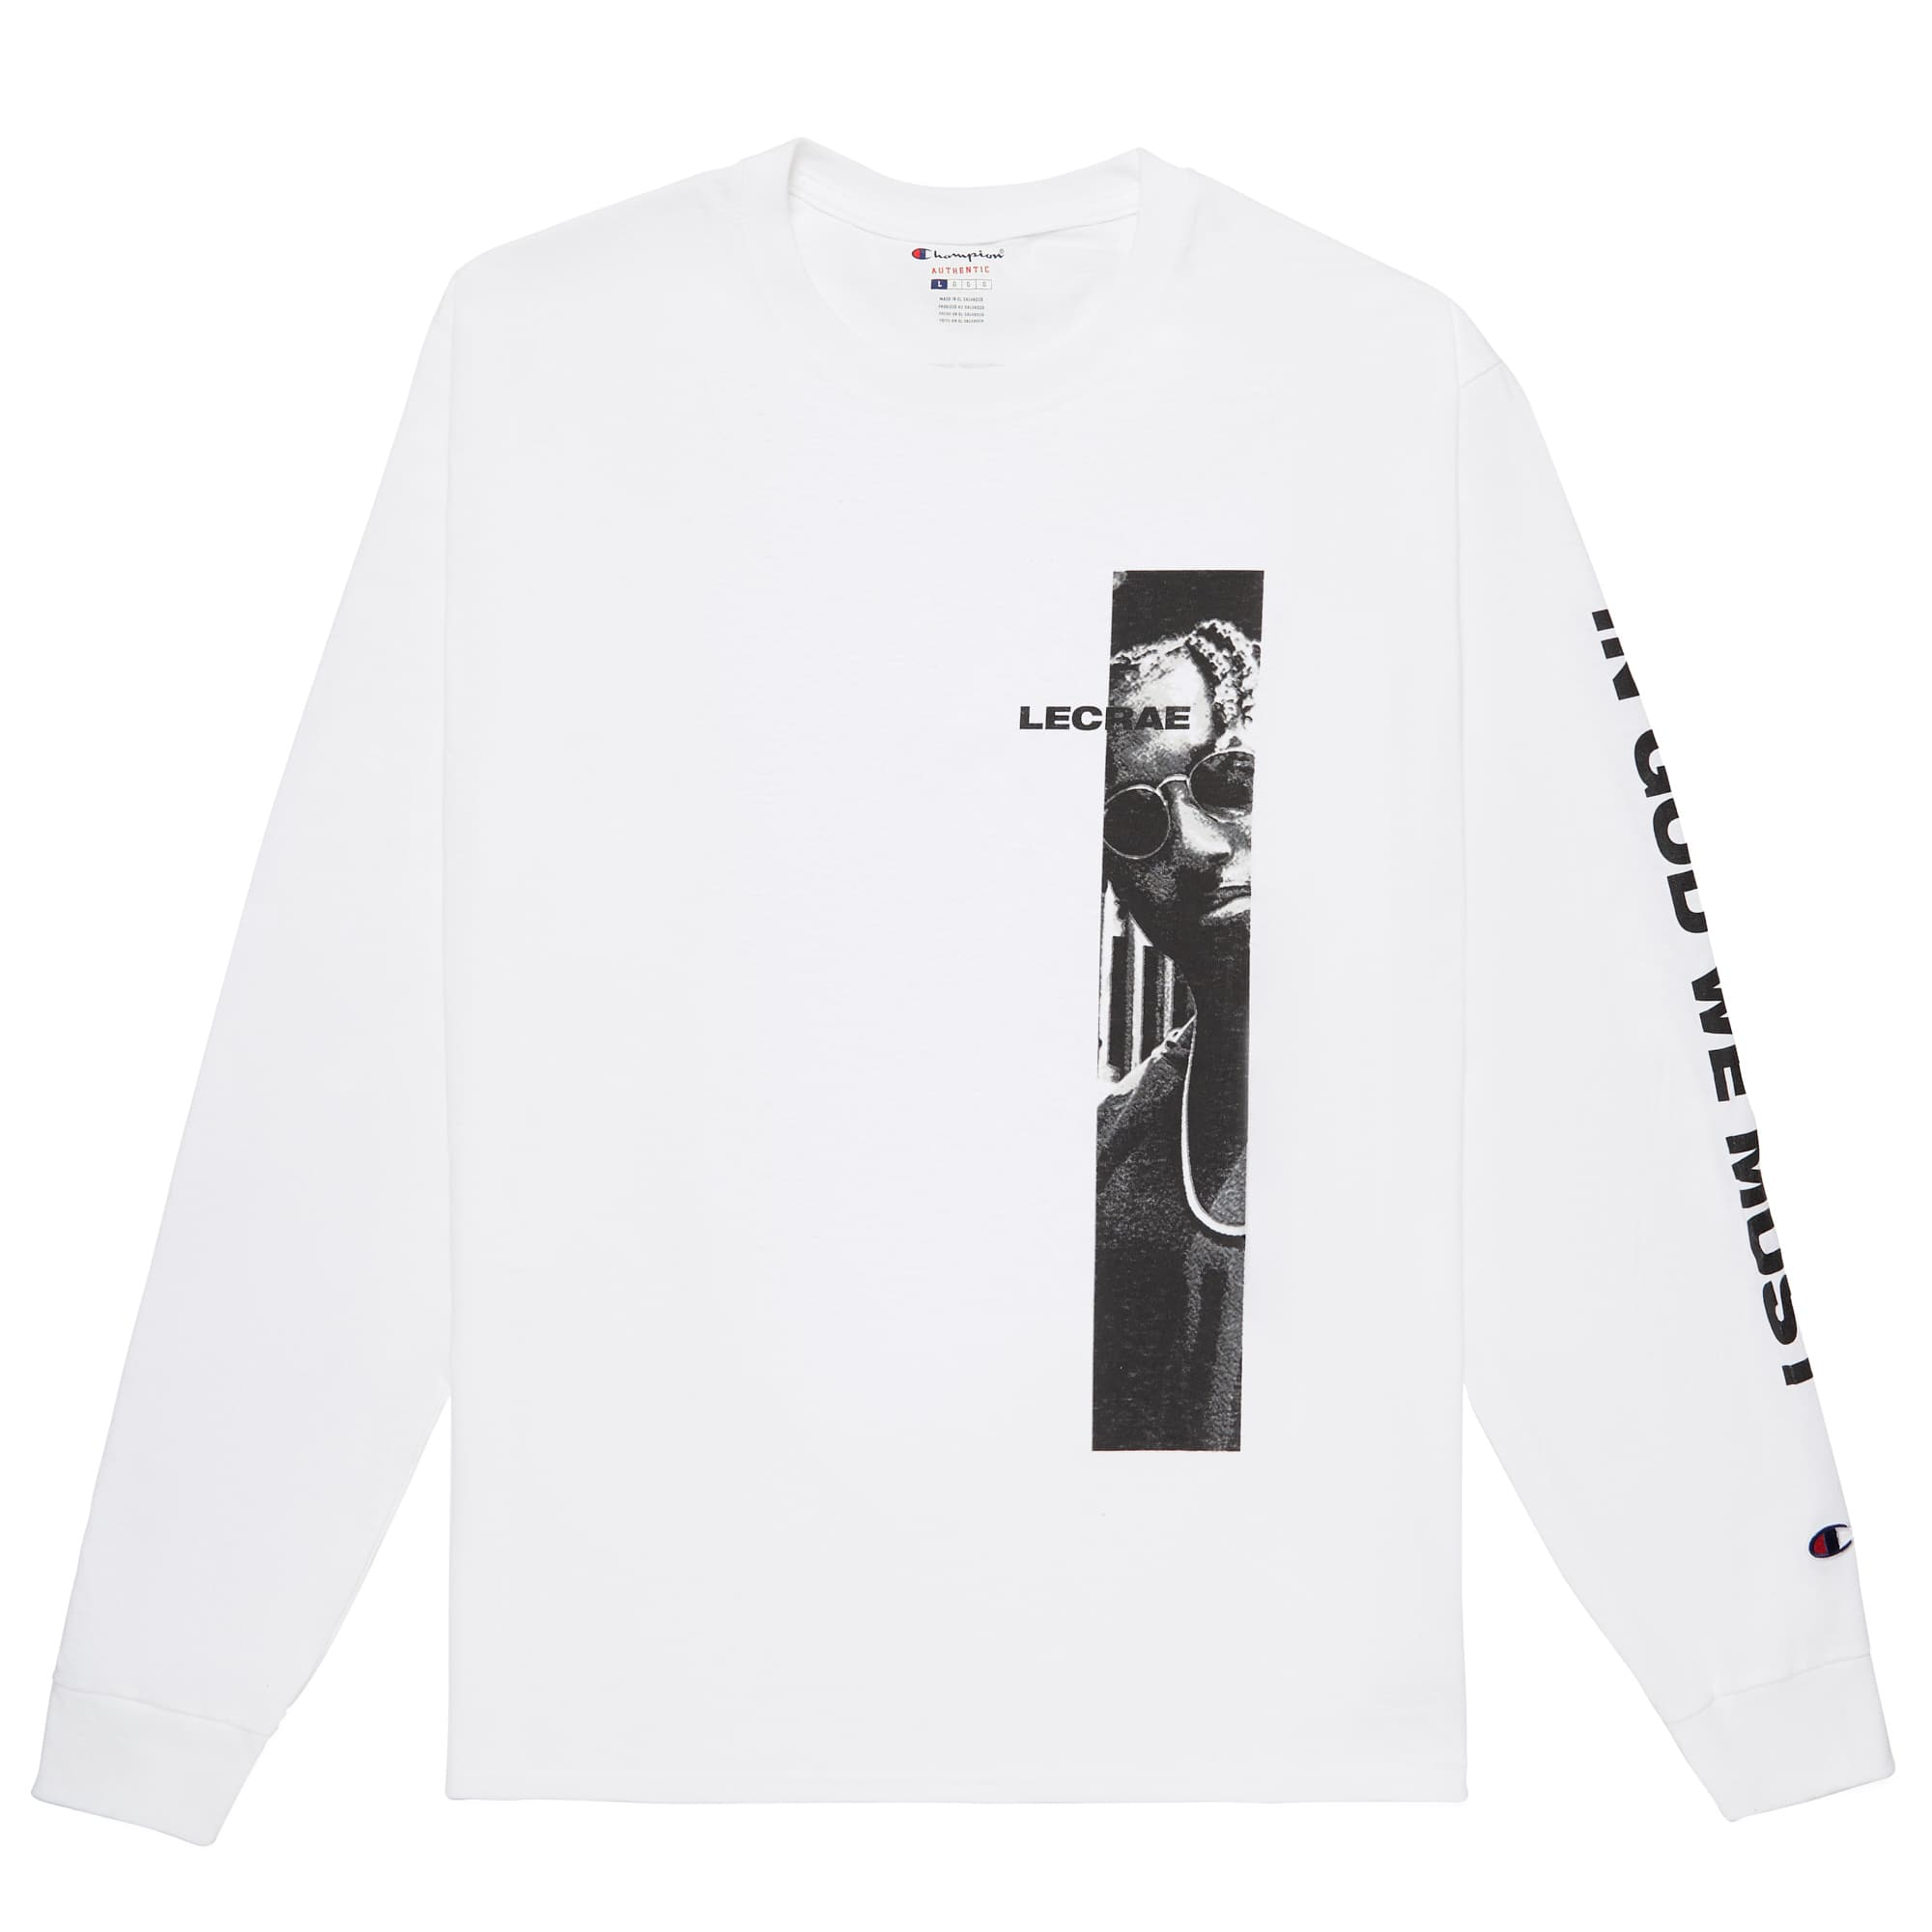 Lecrae x Champion 'In God We Must' Long Sleeve